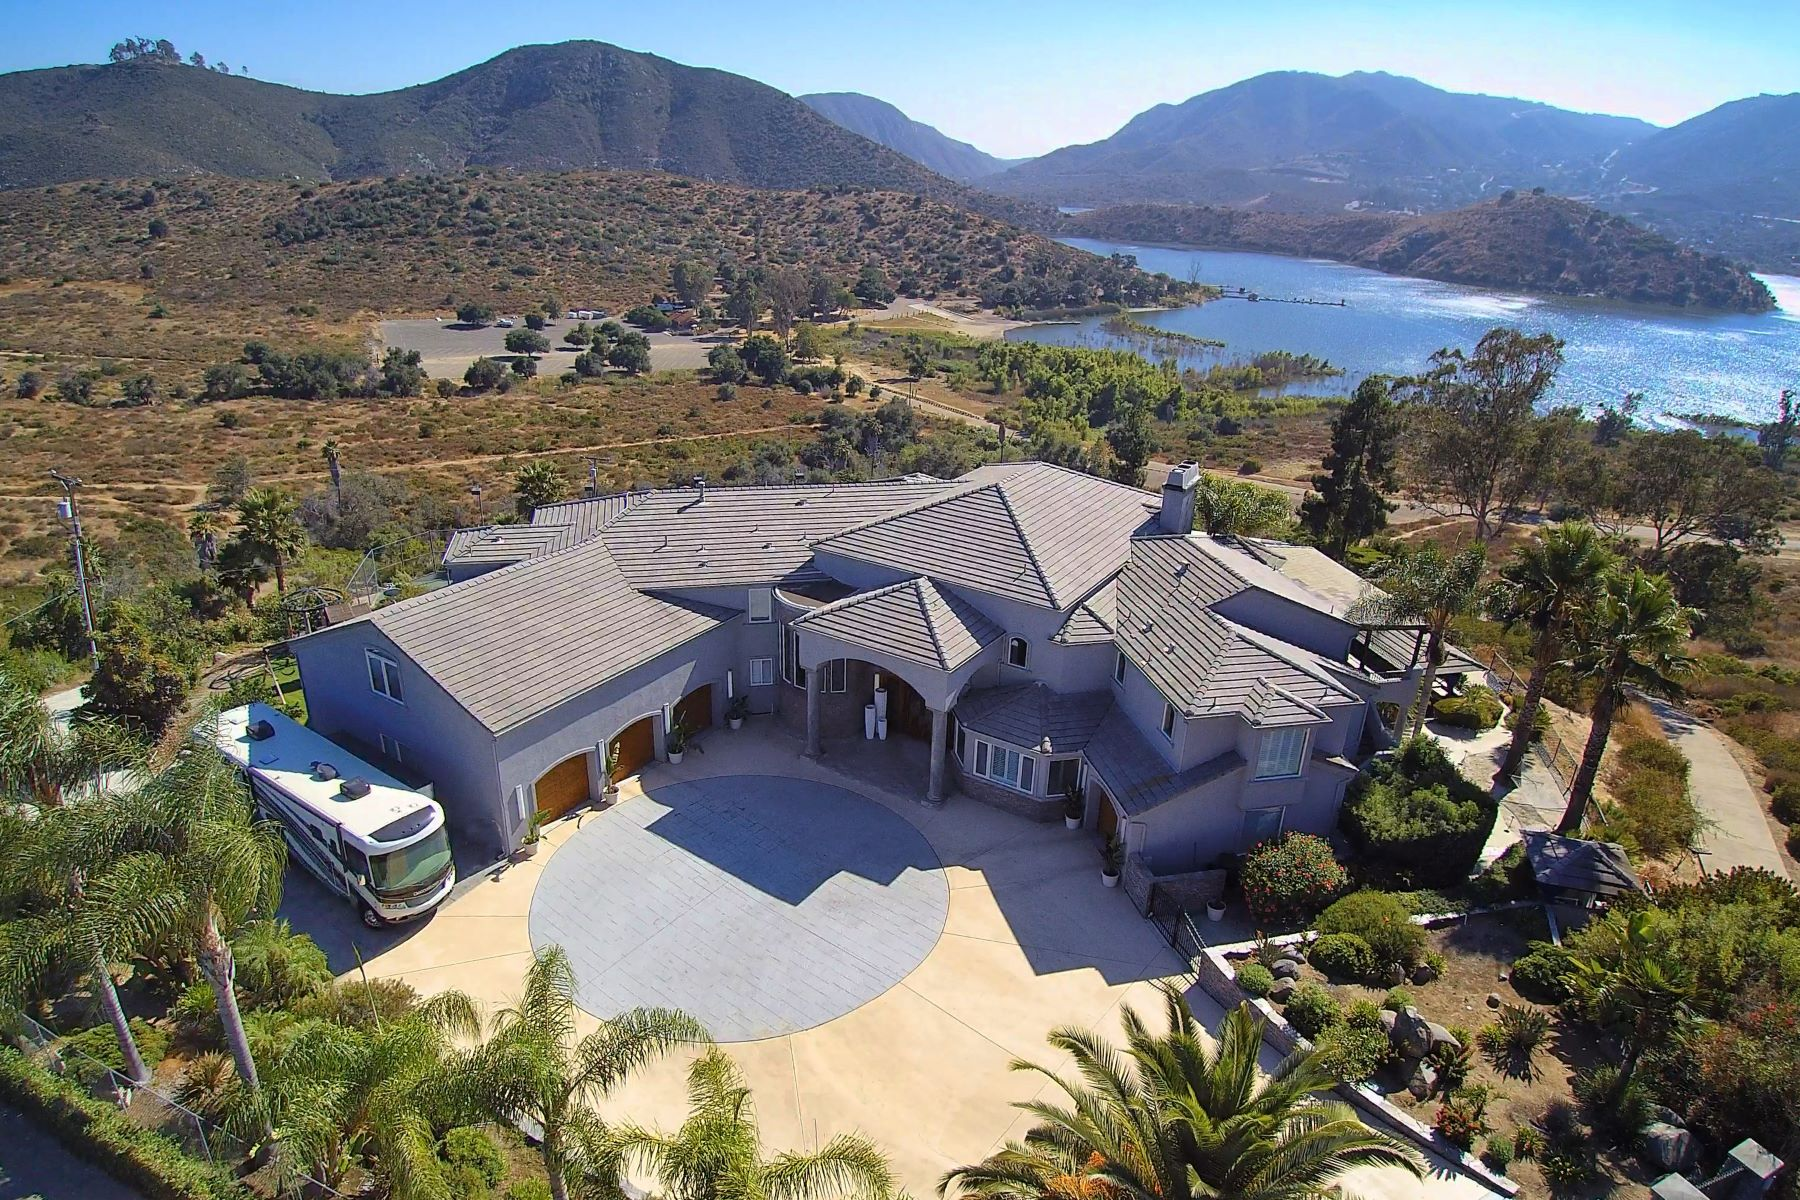 Single Family Home for Active at Tramonto Lago 3653 Purer Road Escondido, California 92029 United States